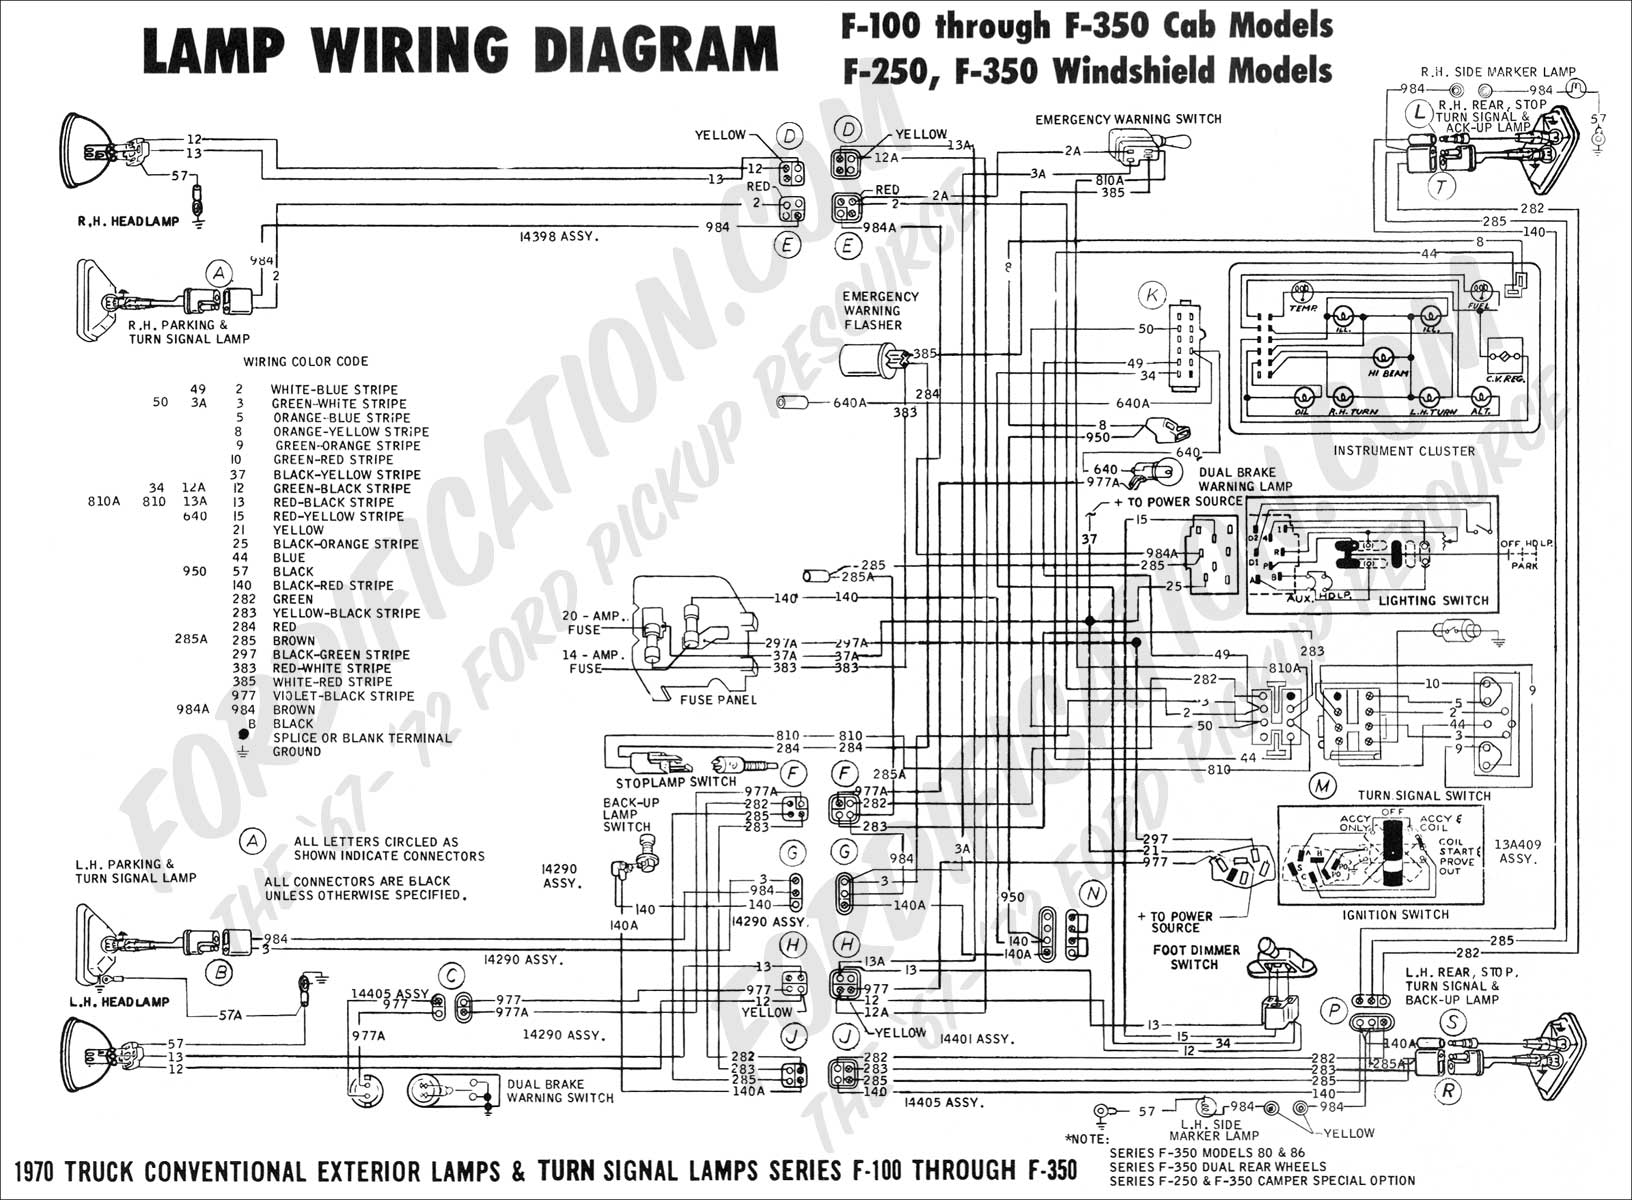 wiring diagram_70ext lights01 ford truck technical drawings and schematics section h wiring 2008 ford ranger electrical wiring diagram at bayanpartner.co